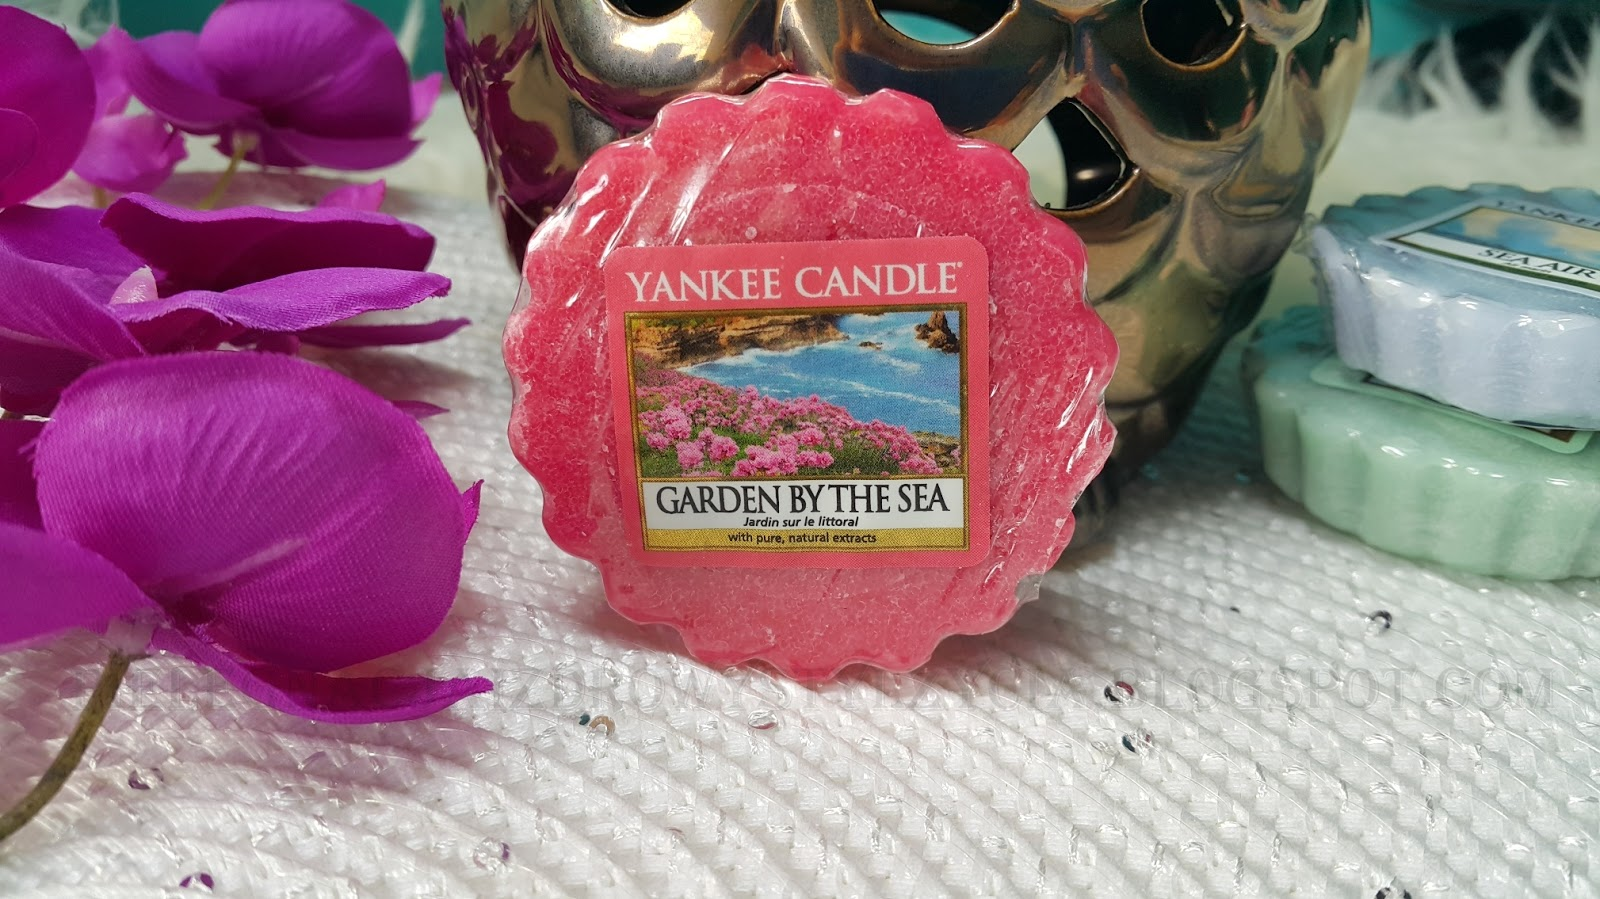 Garden by the Sea Yankee Candle